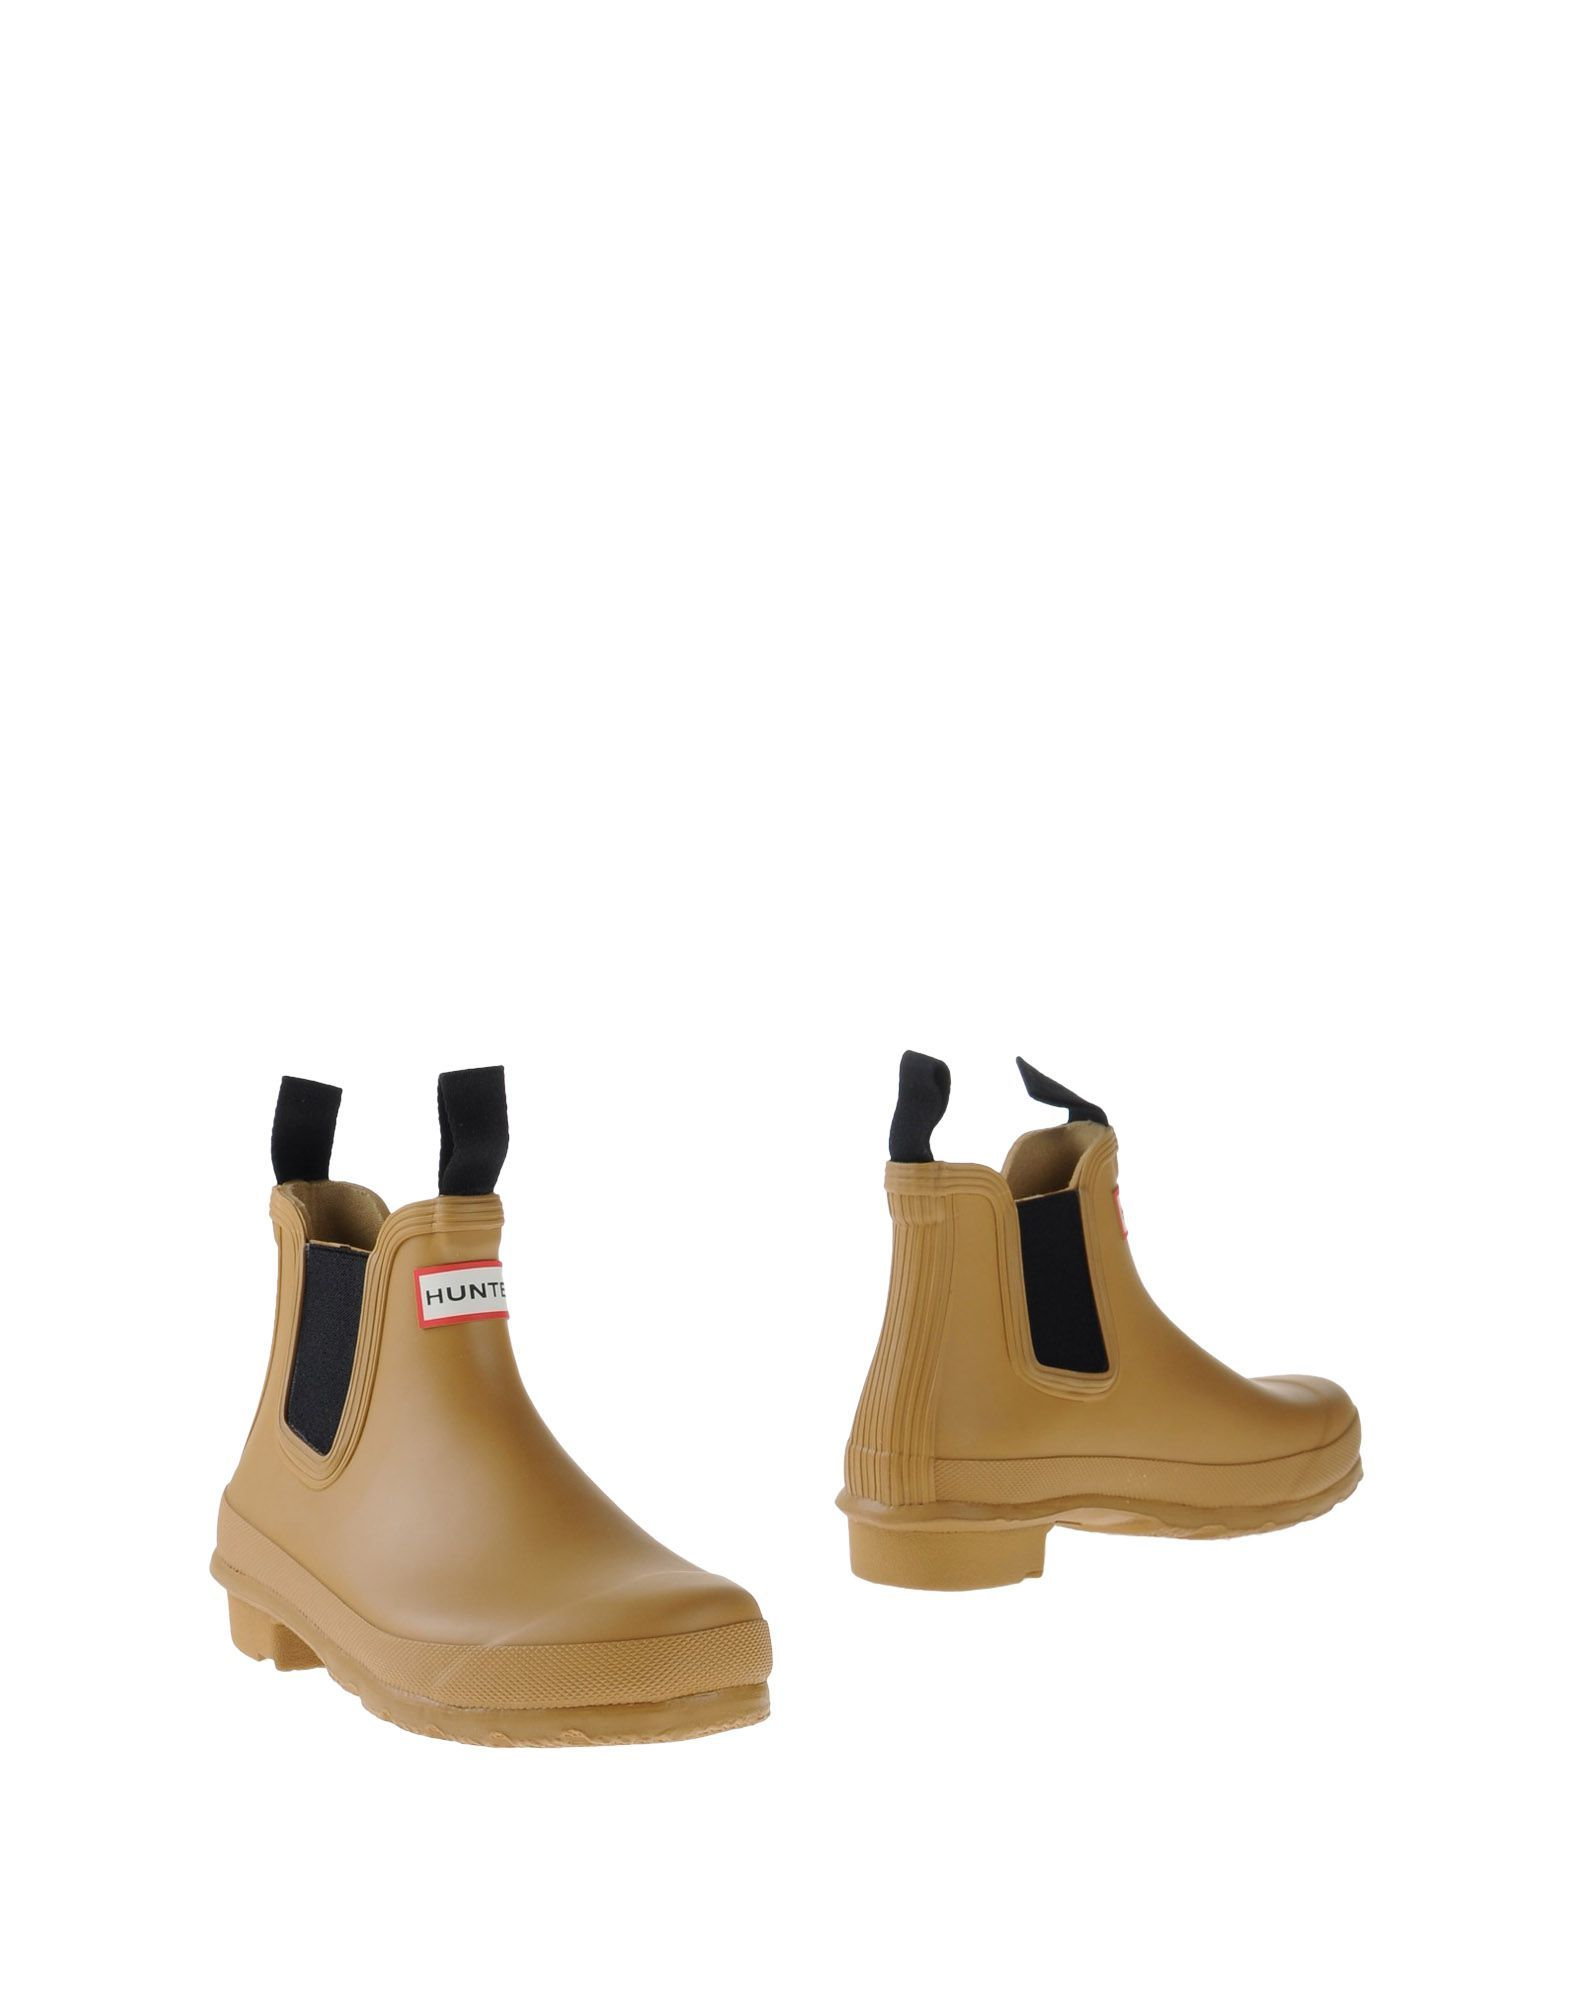 47c7dc0268 Women s Natural Ankle Boots in 2019